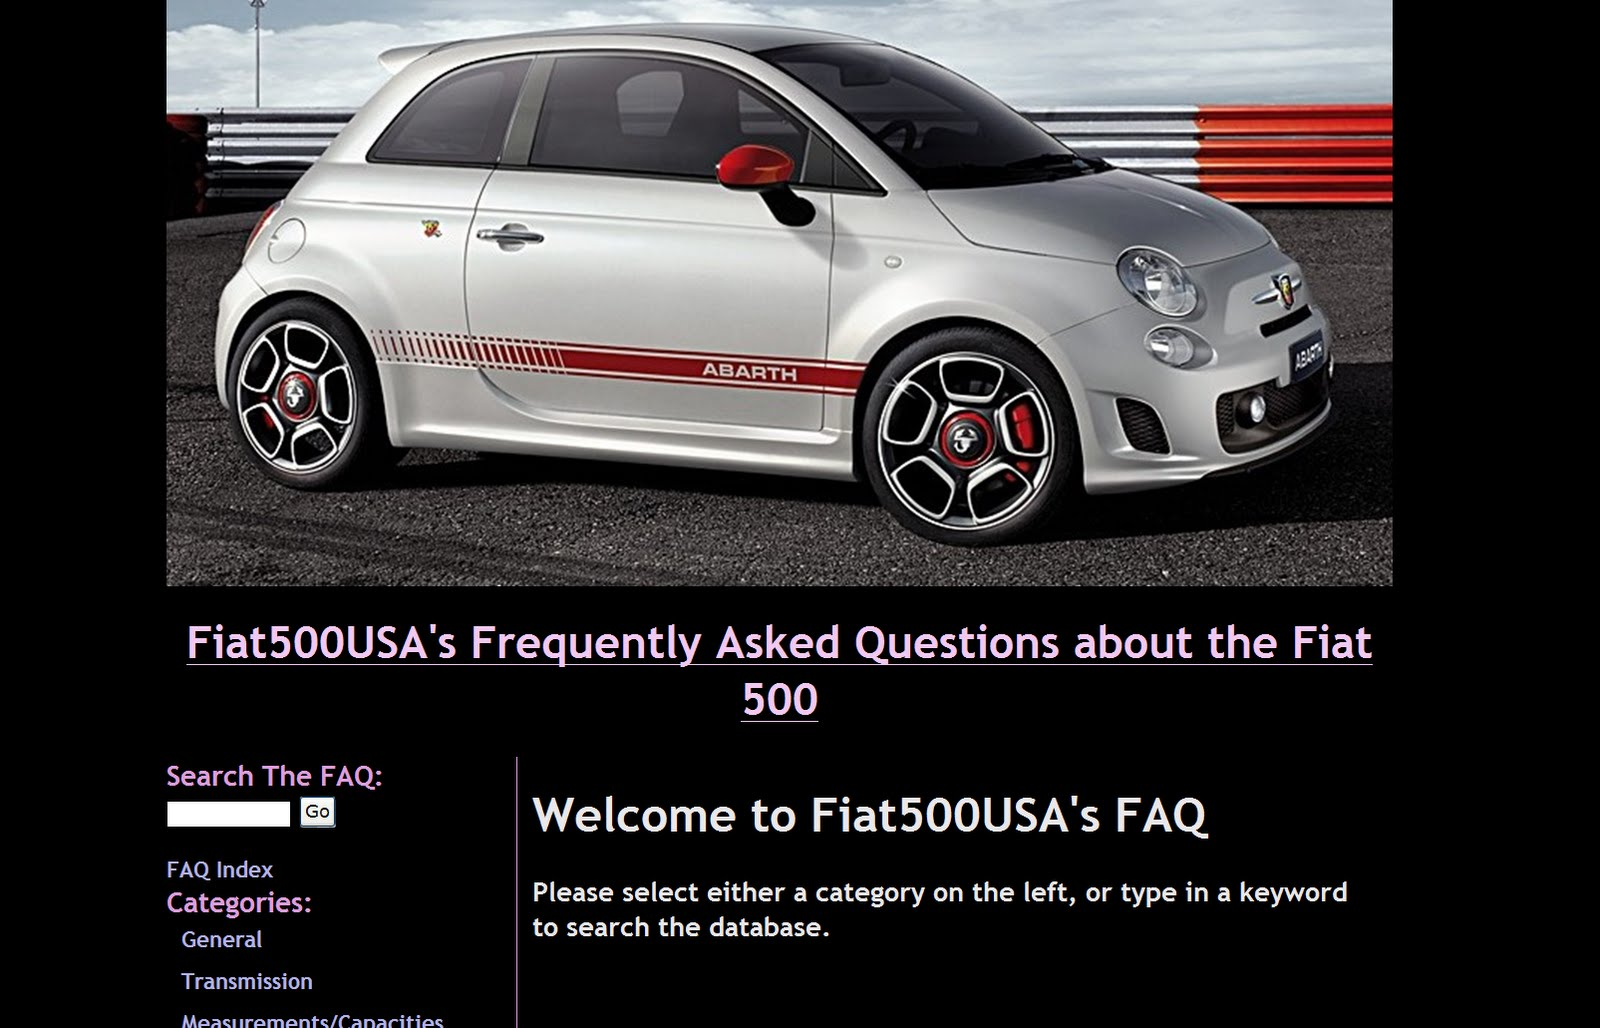 database on the Fiat 500.